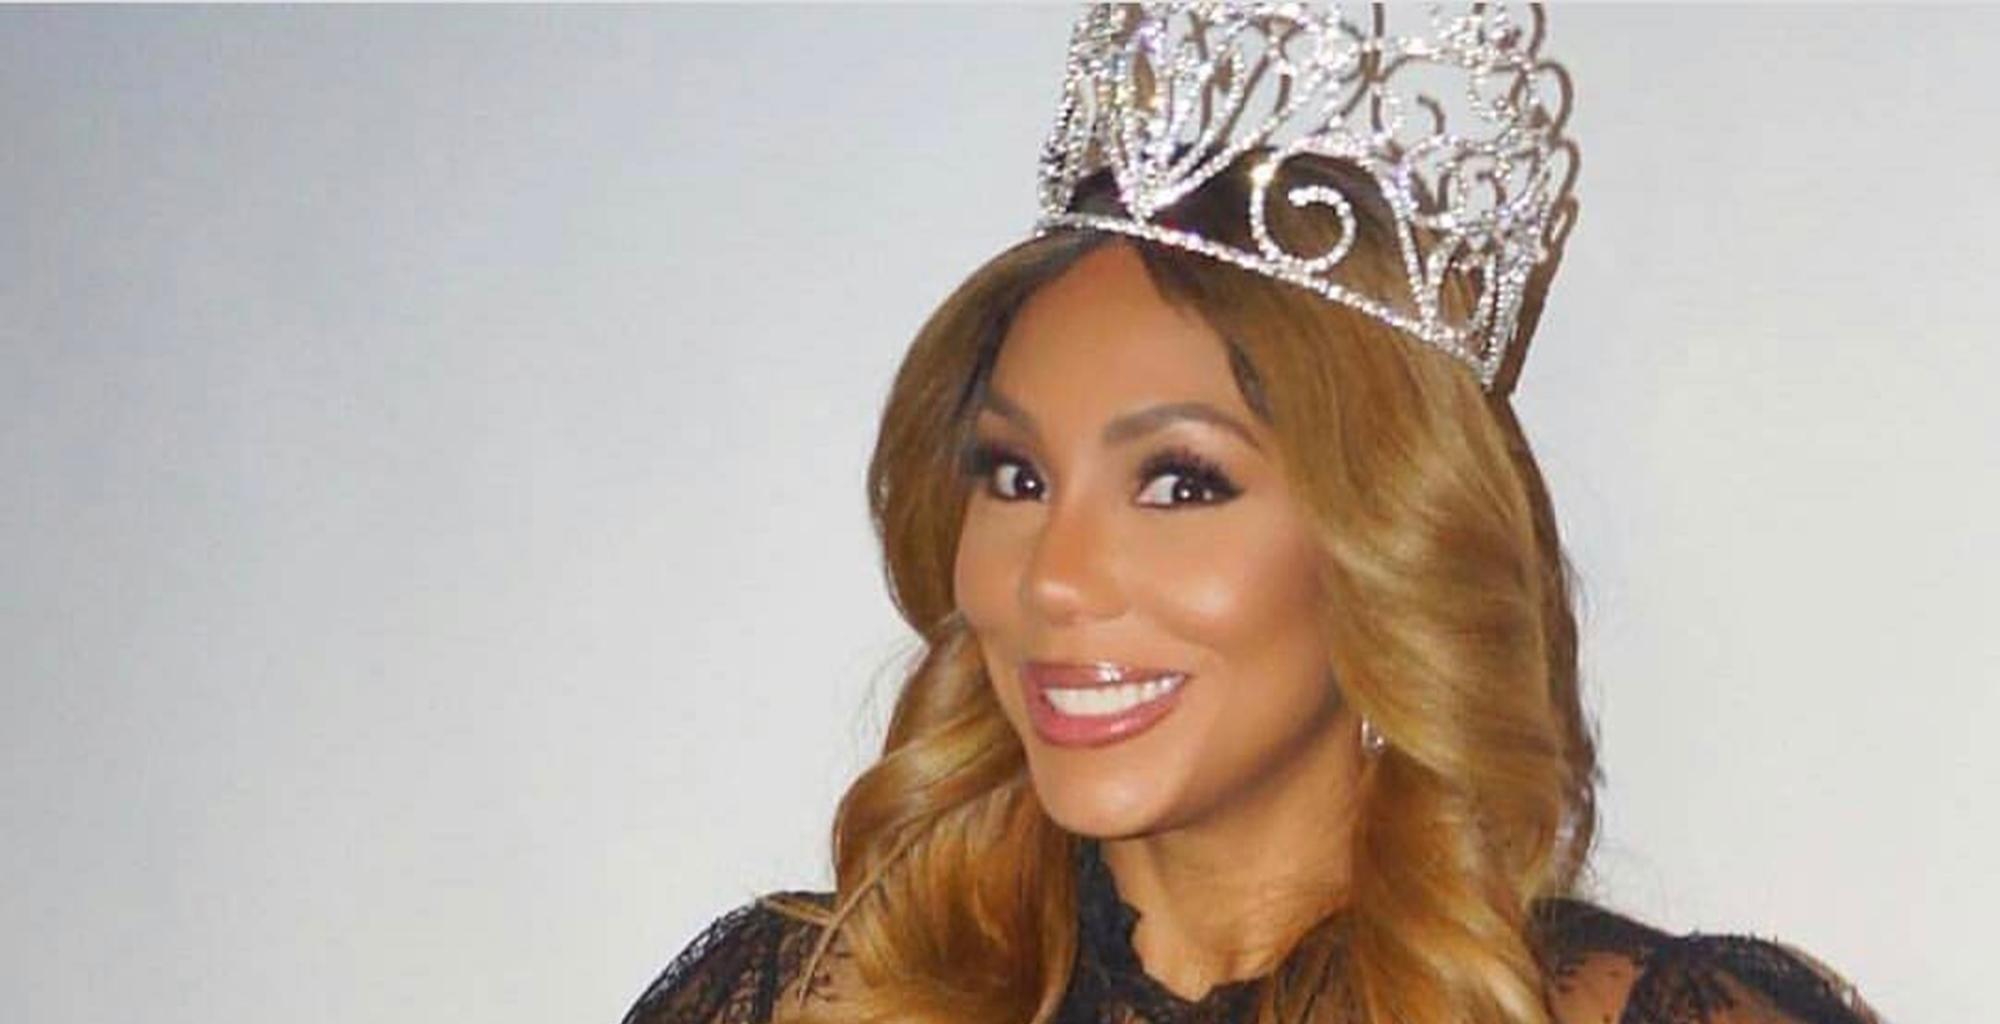 Tamar Braxton's Latest Picture Confirms That She Is Having A Hot Girl Summer And Tiny Harris Approves, BF David Adefeso Not So Much